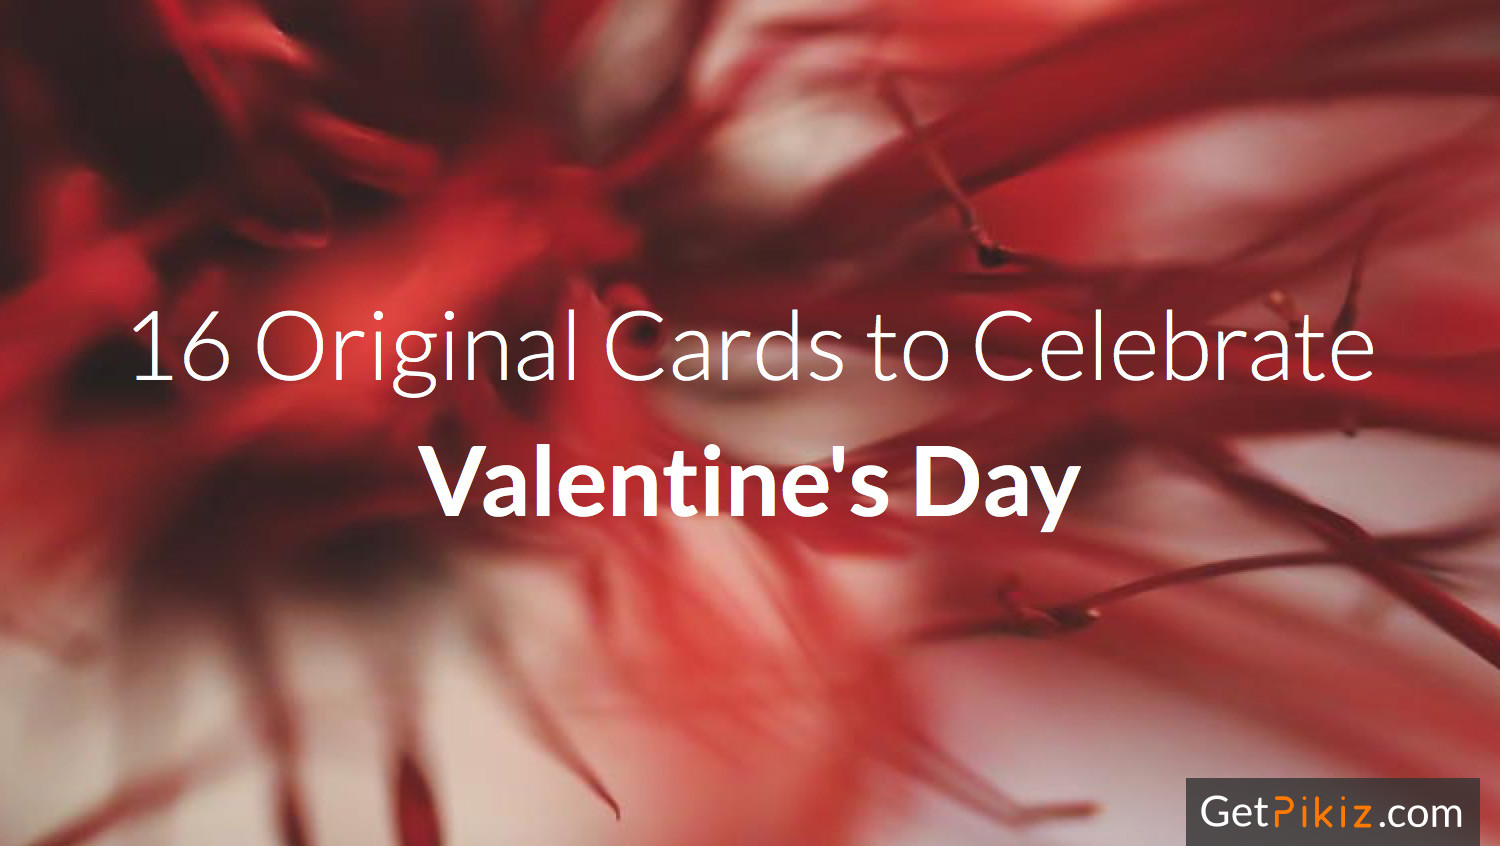 16 Original Cards to Celeberate Valentine's Day